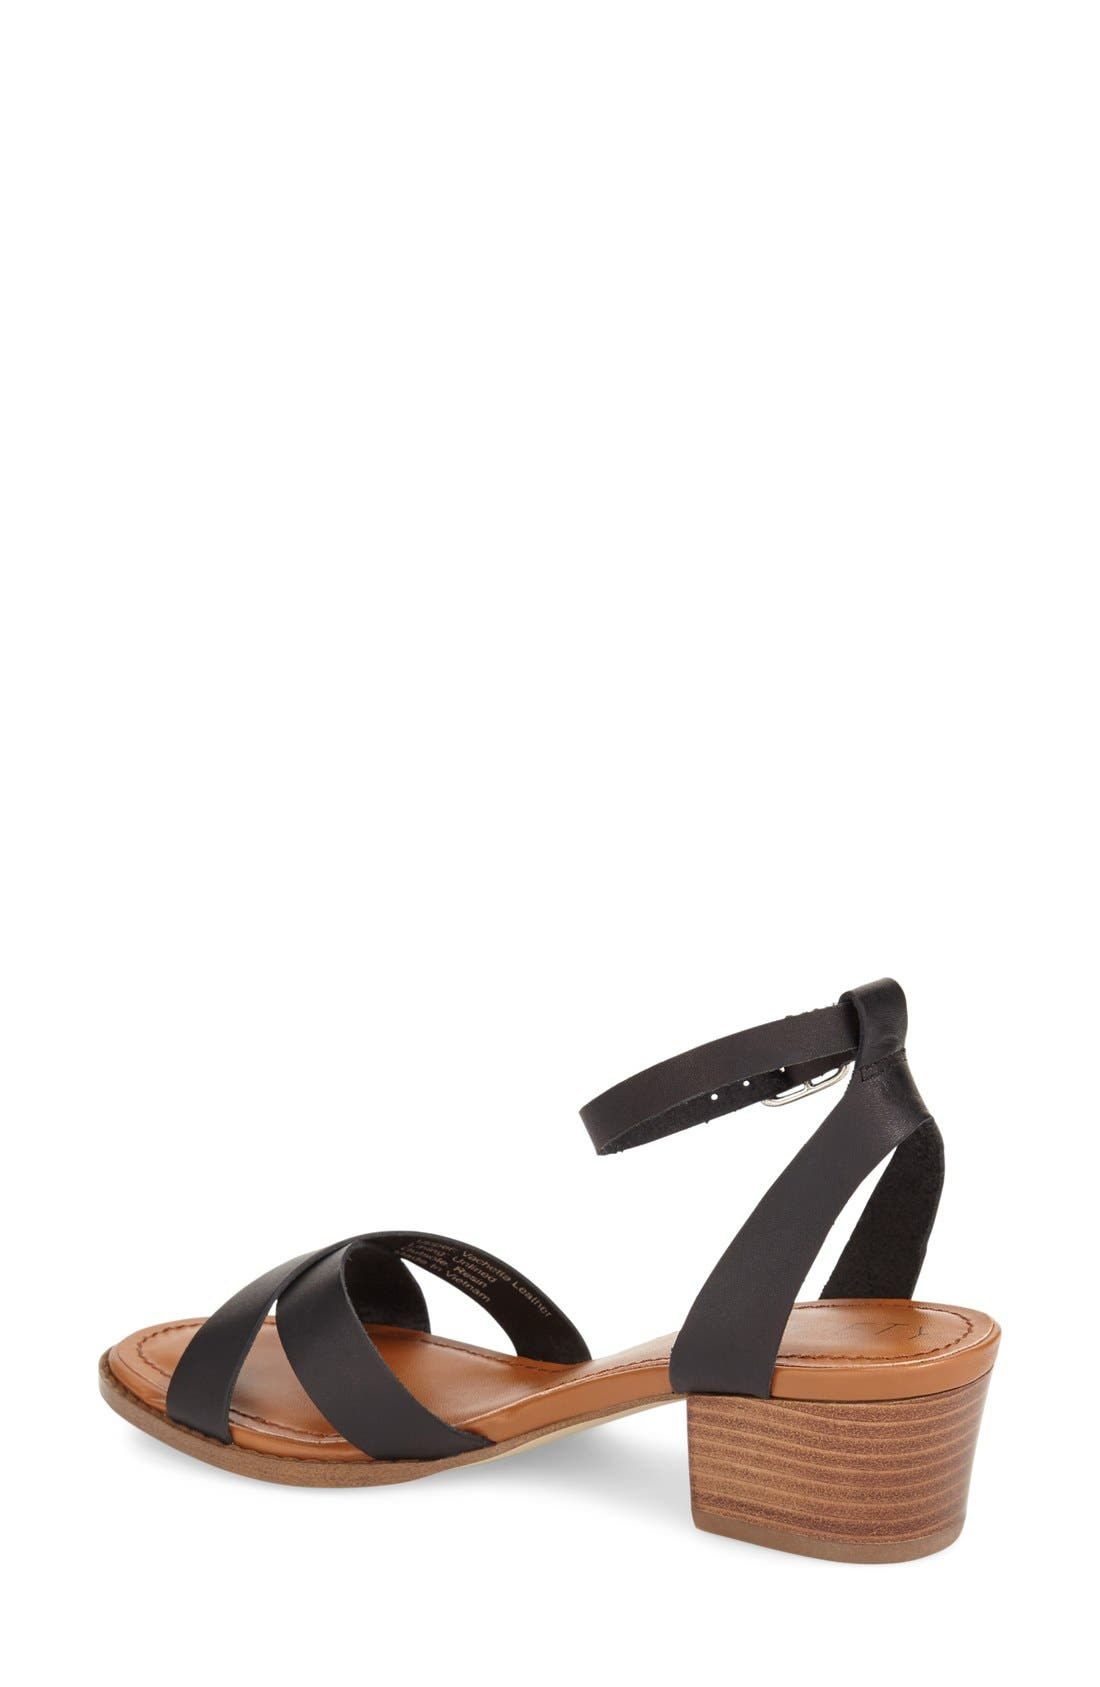 'Savannah' Sandal,                             Alternate thumbnail 3, color,                             002